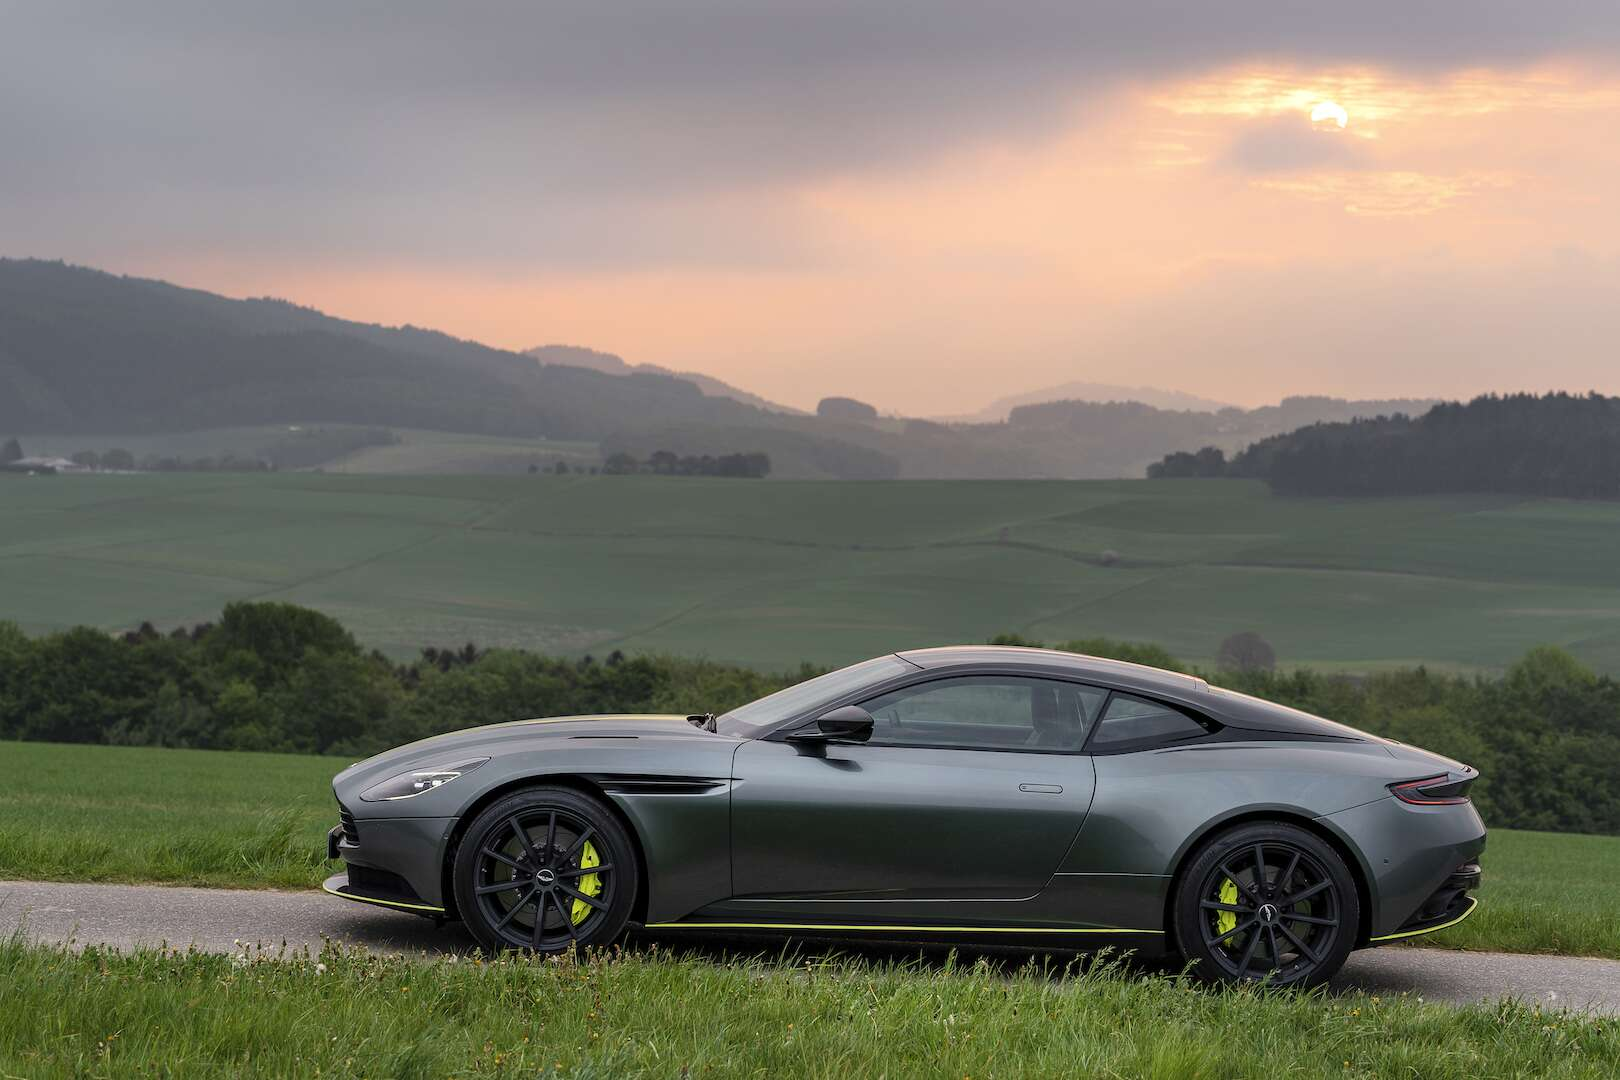 2019 aston martin db11 amr first drive review: aston keeps fussing